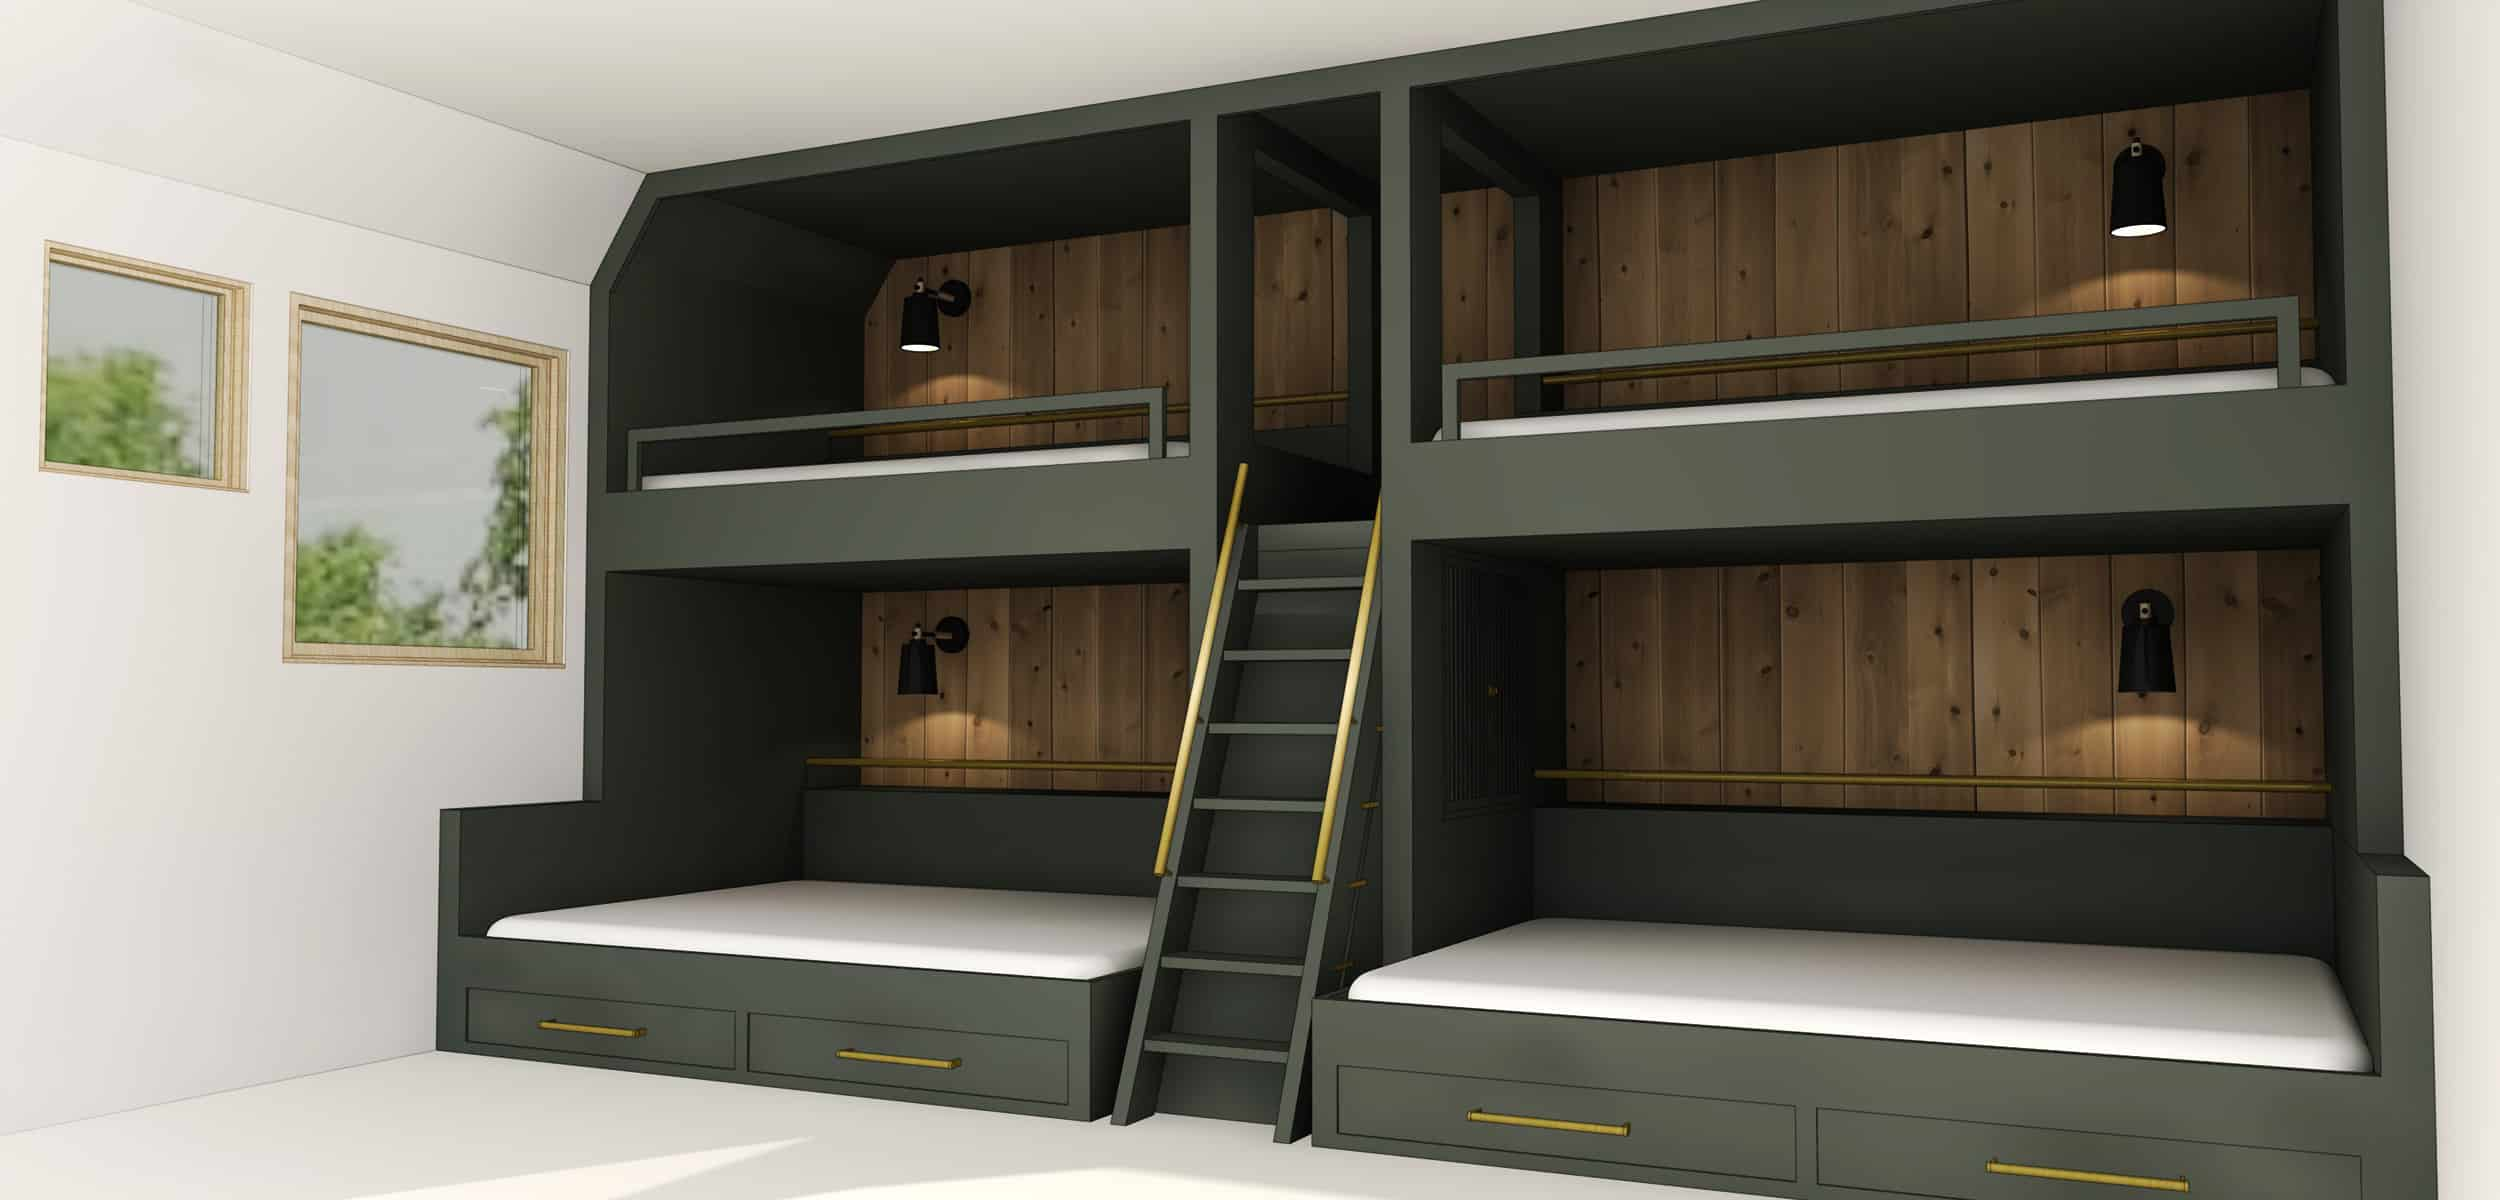 bunk buds with storage Children's room revamp: Updating your bunk beds